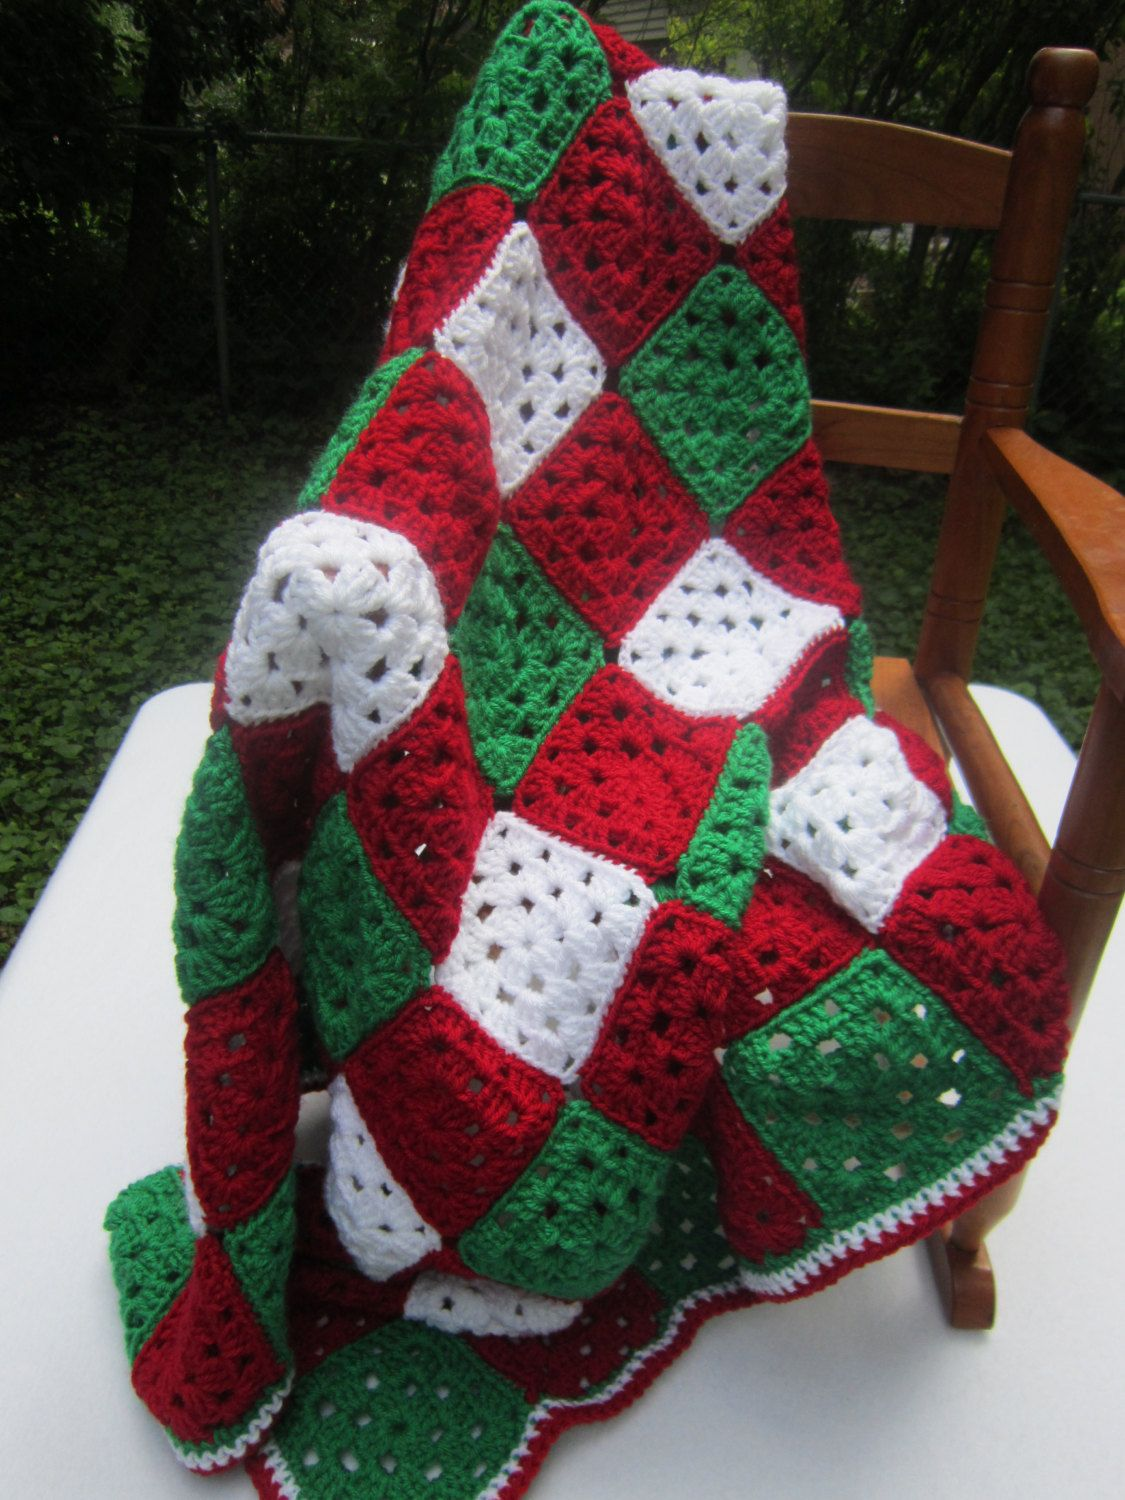 Crochet Christmas Baby Afghan, Granny Square Blanket, Red Green and ...